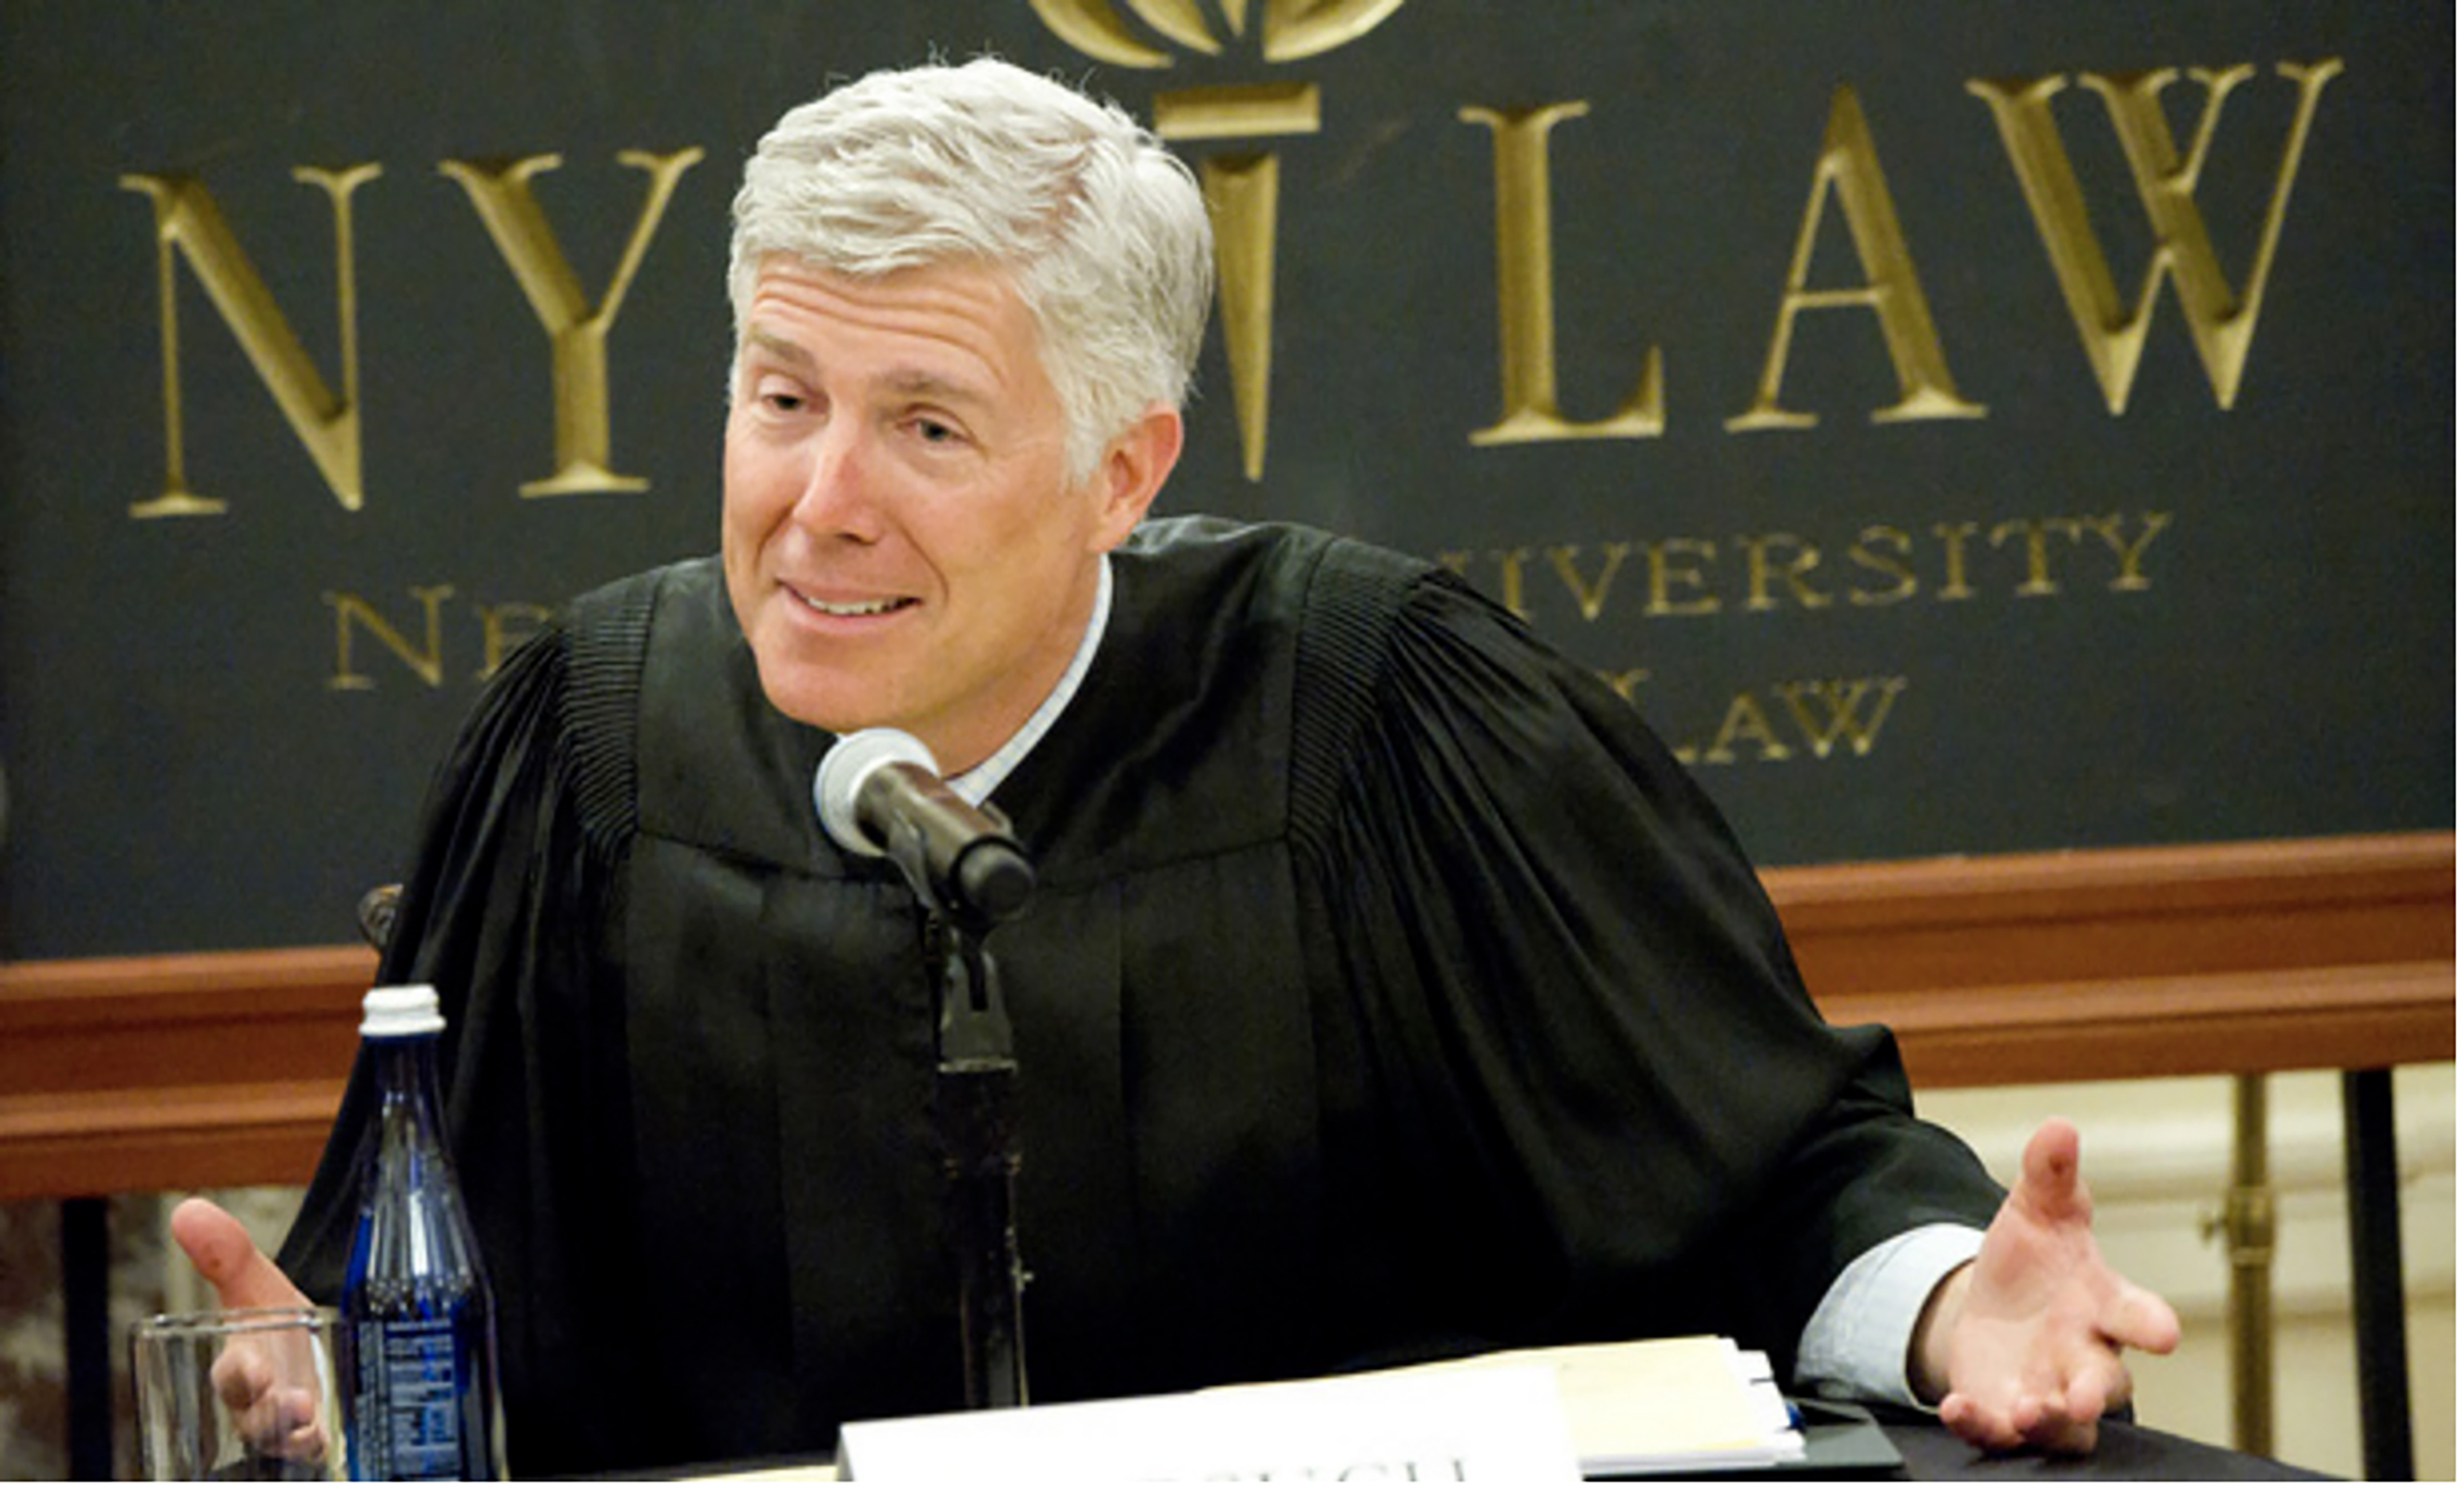 Judge Gorsuch, United States Court of Appeals for the Tenth Circuit, New York, N.Y.